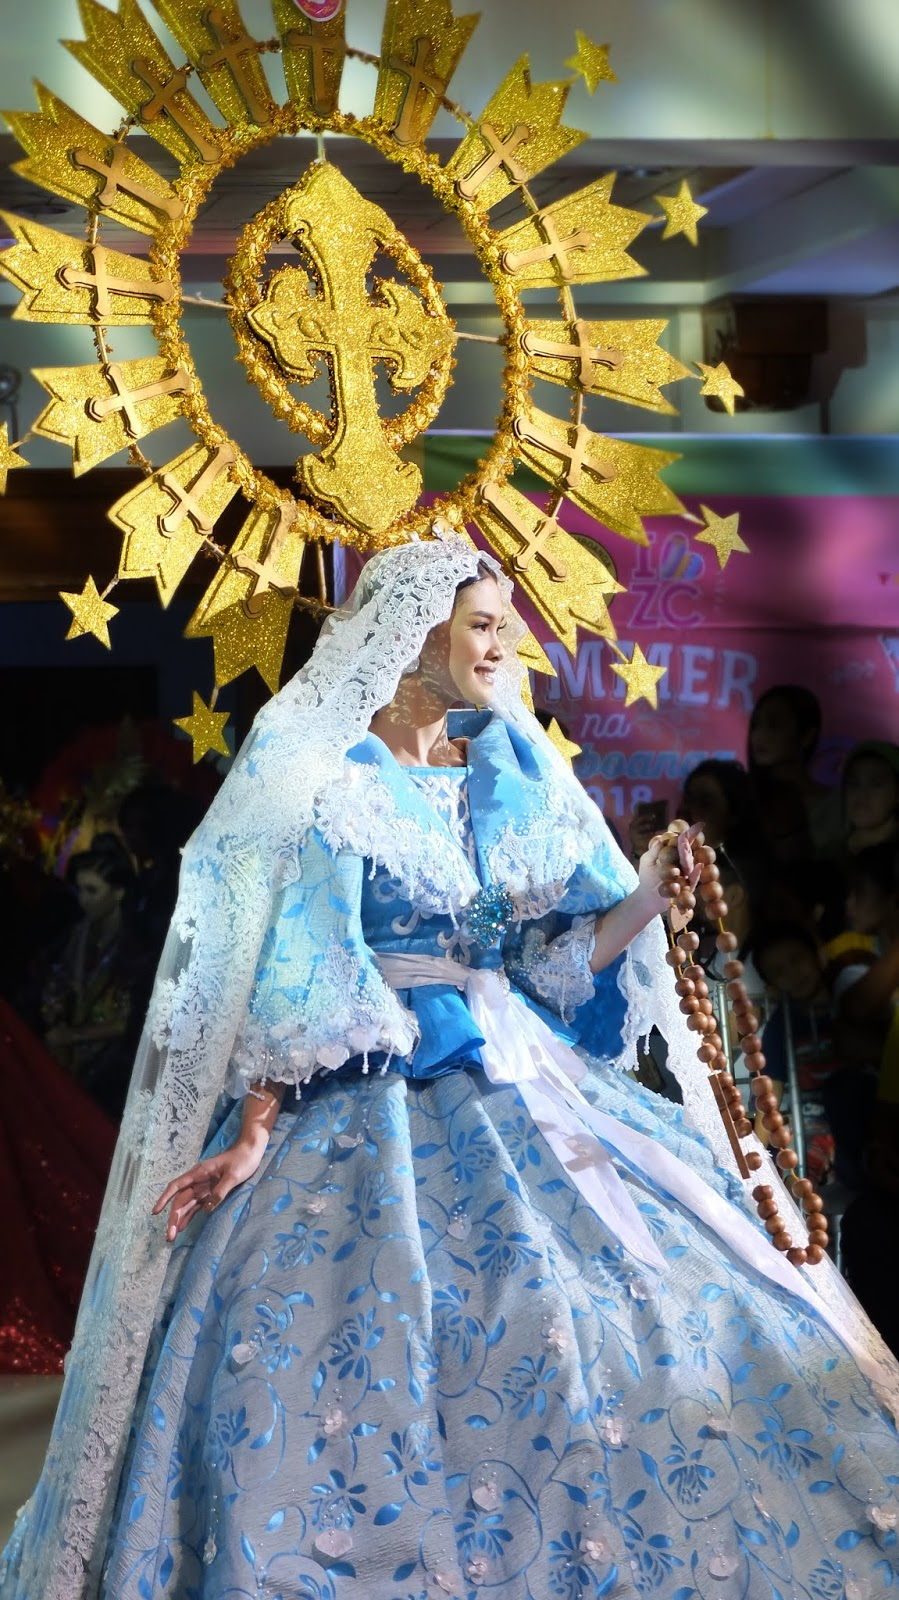 Zamboanga Hermosa Festival or Fiesta Pilar Festival de las Bellas y Flores Gown Competition National Costume